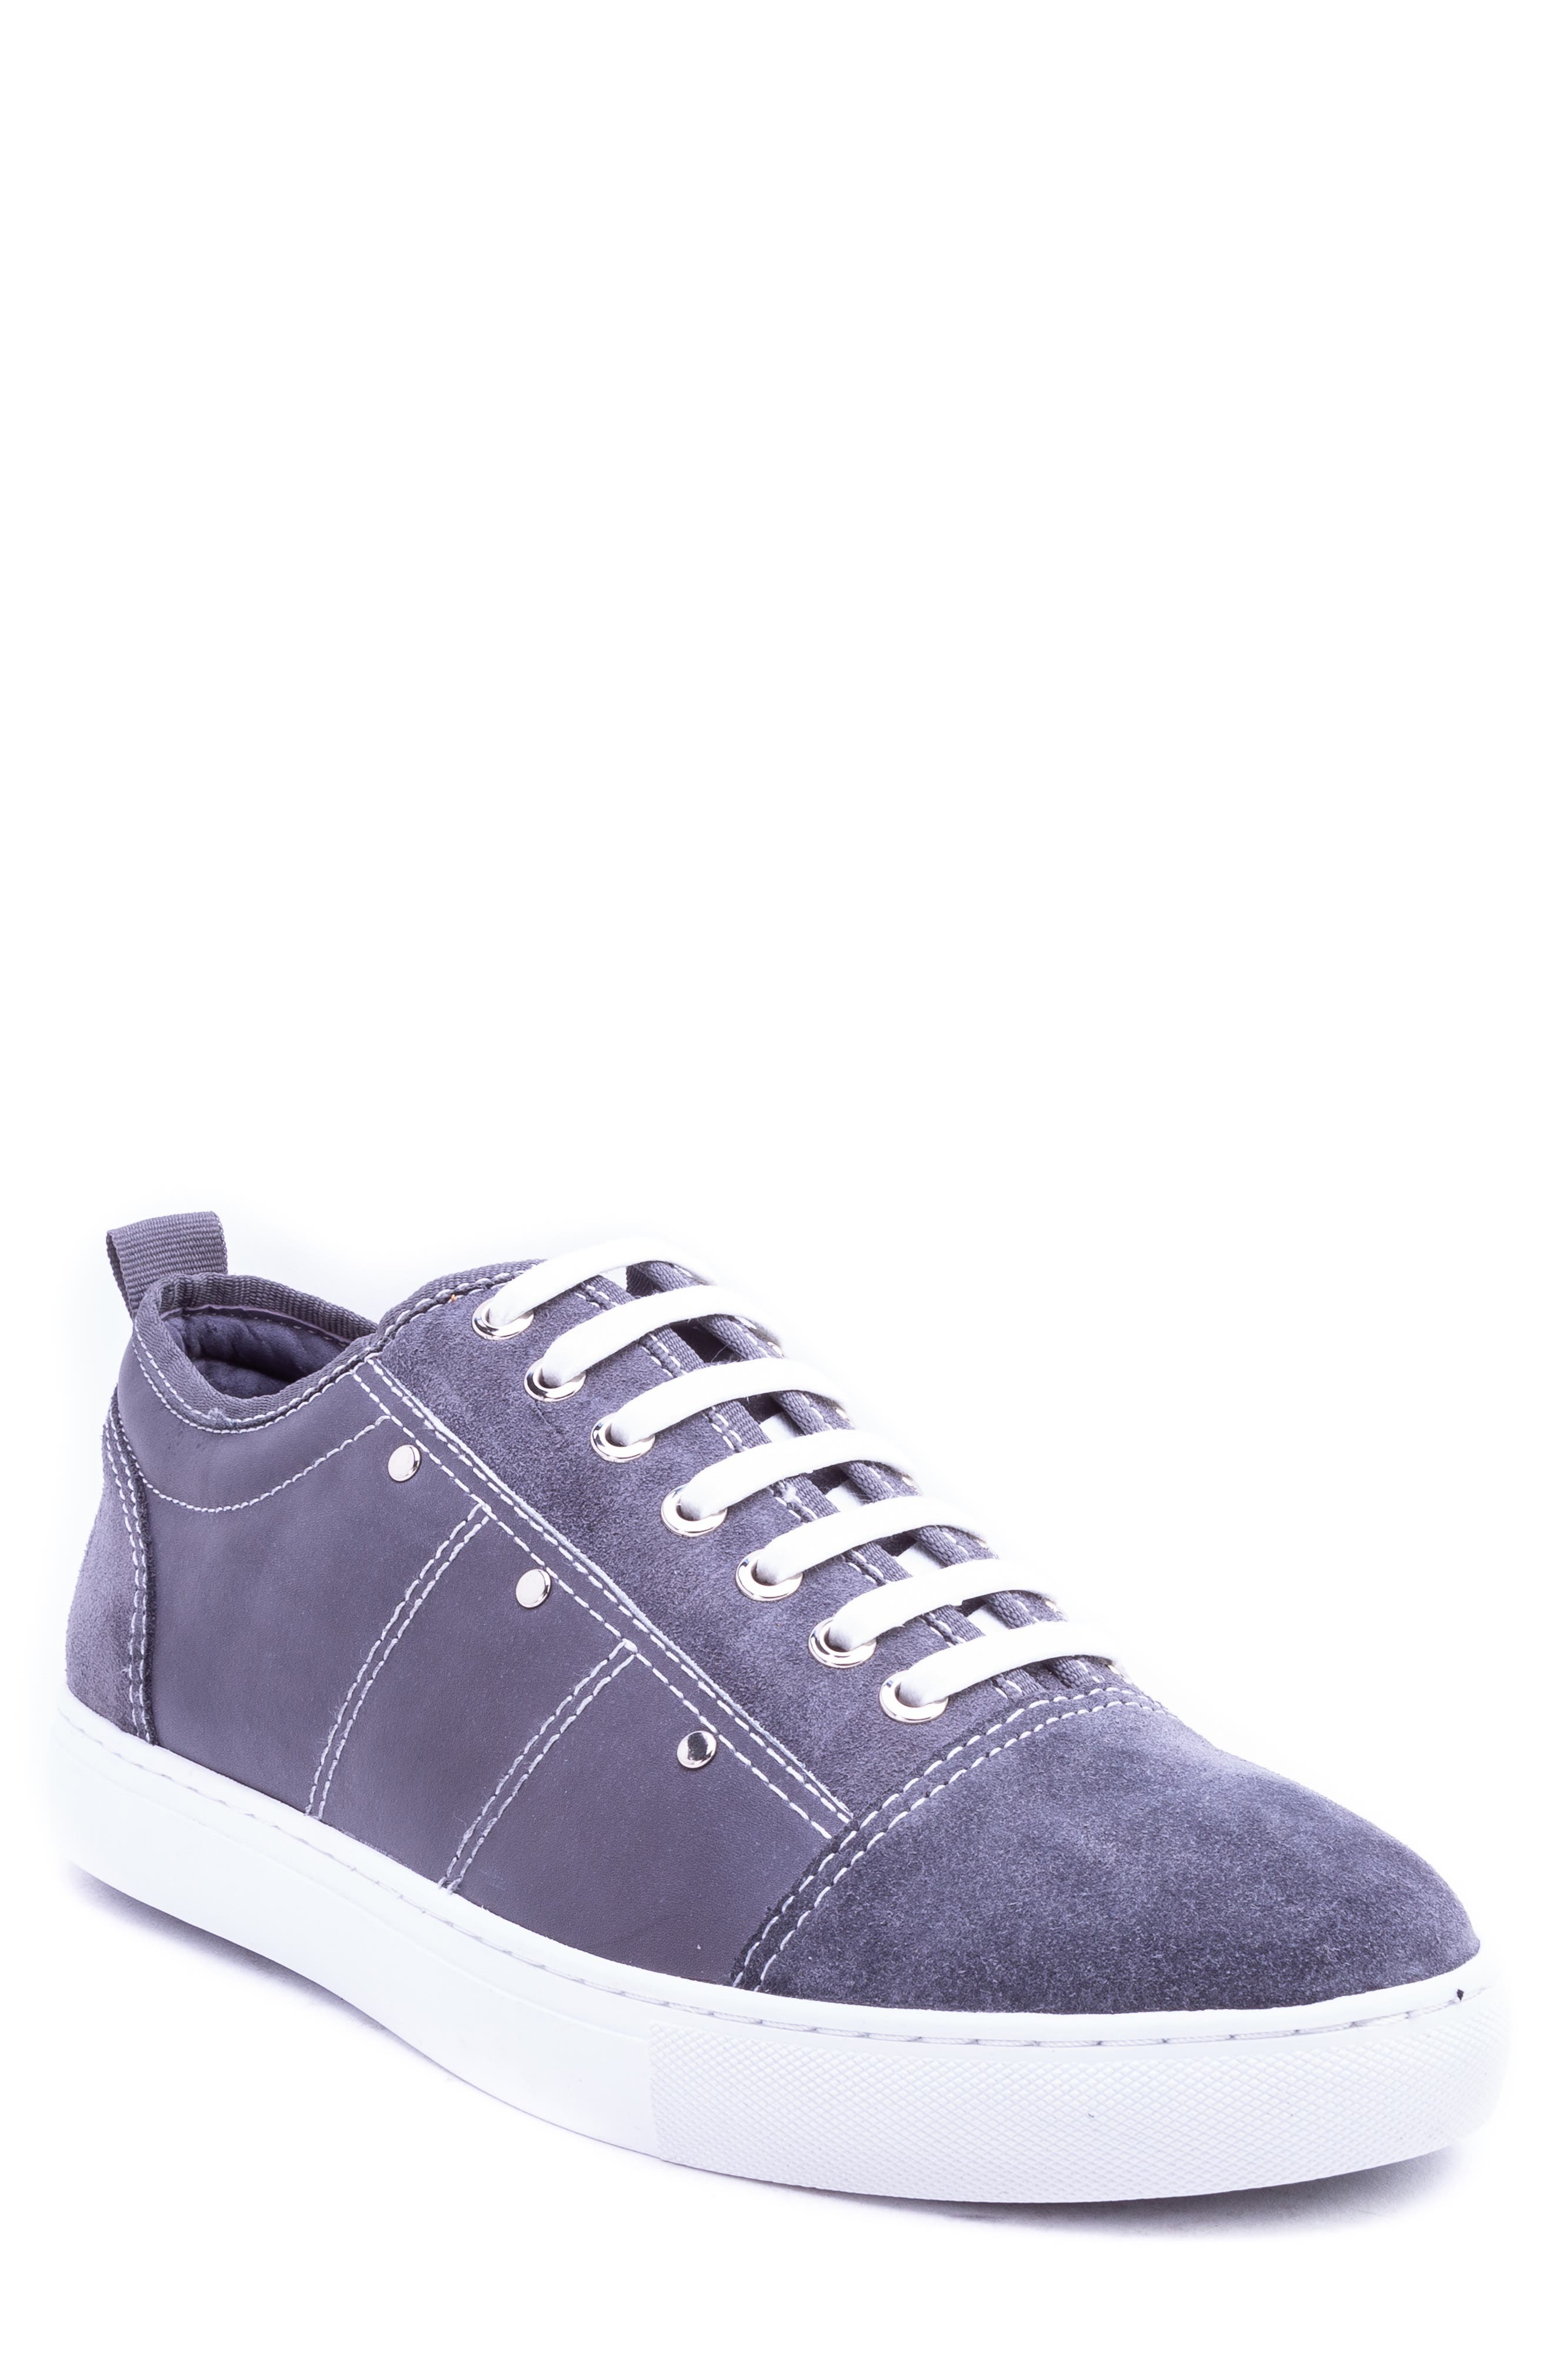 Severn Studded Low Top Sneaker,                         Main,                         color, GREY SUEDE/ LEATHER